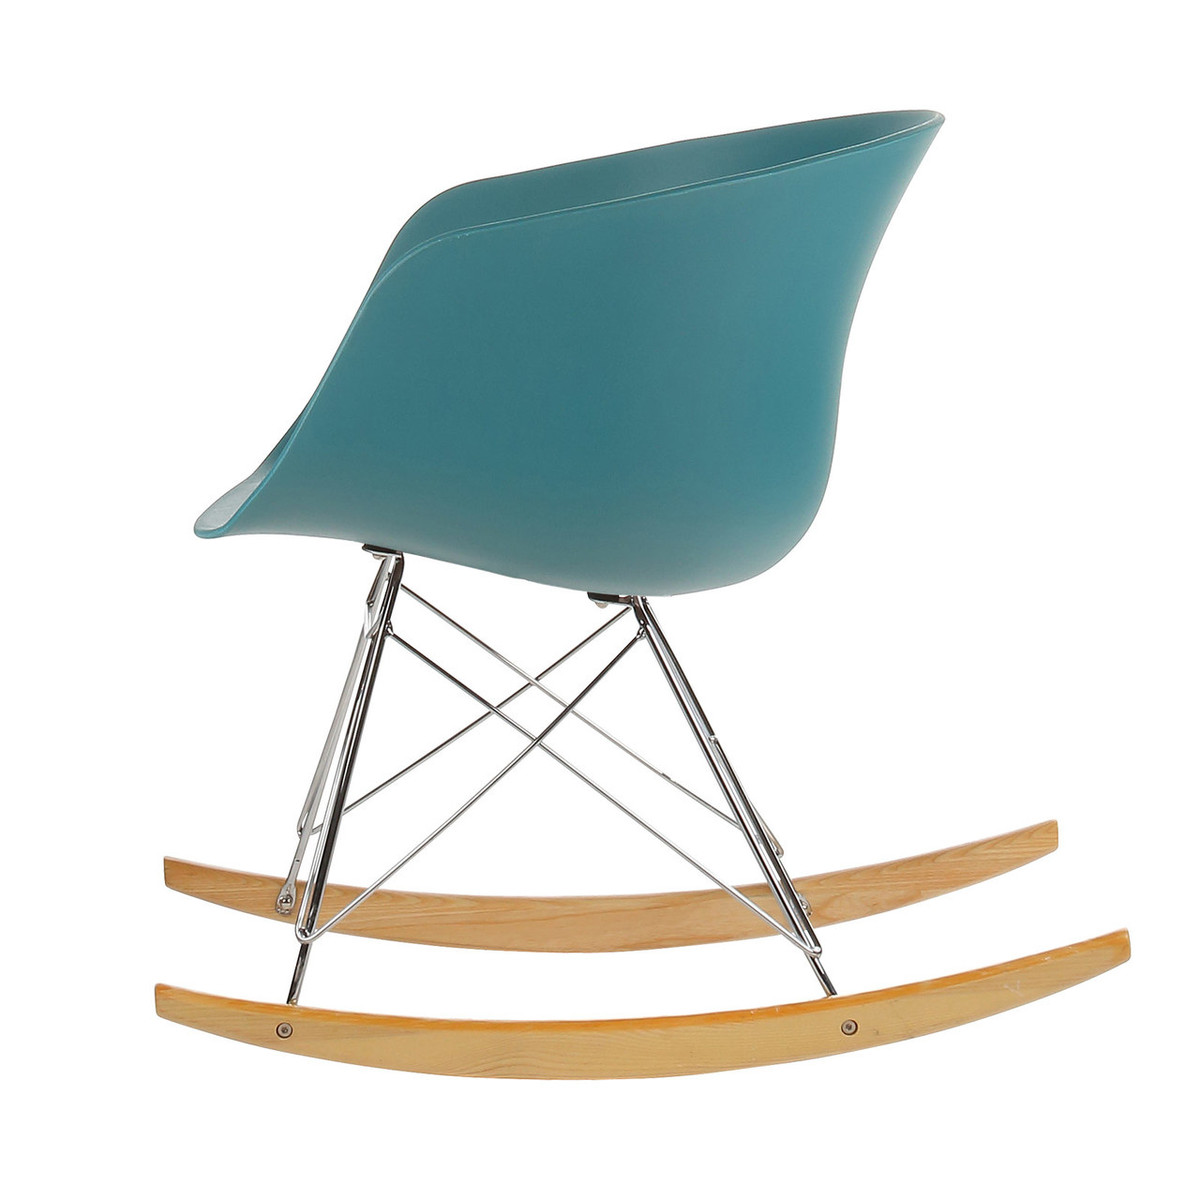 Teal Rocking Chair Danish Modern Rocking Chair Teal Ja Dn Rc Tl Joseph